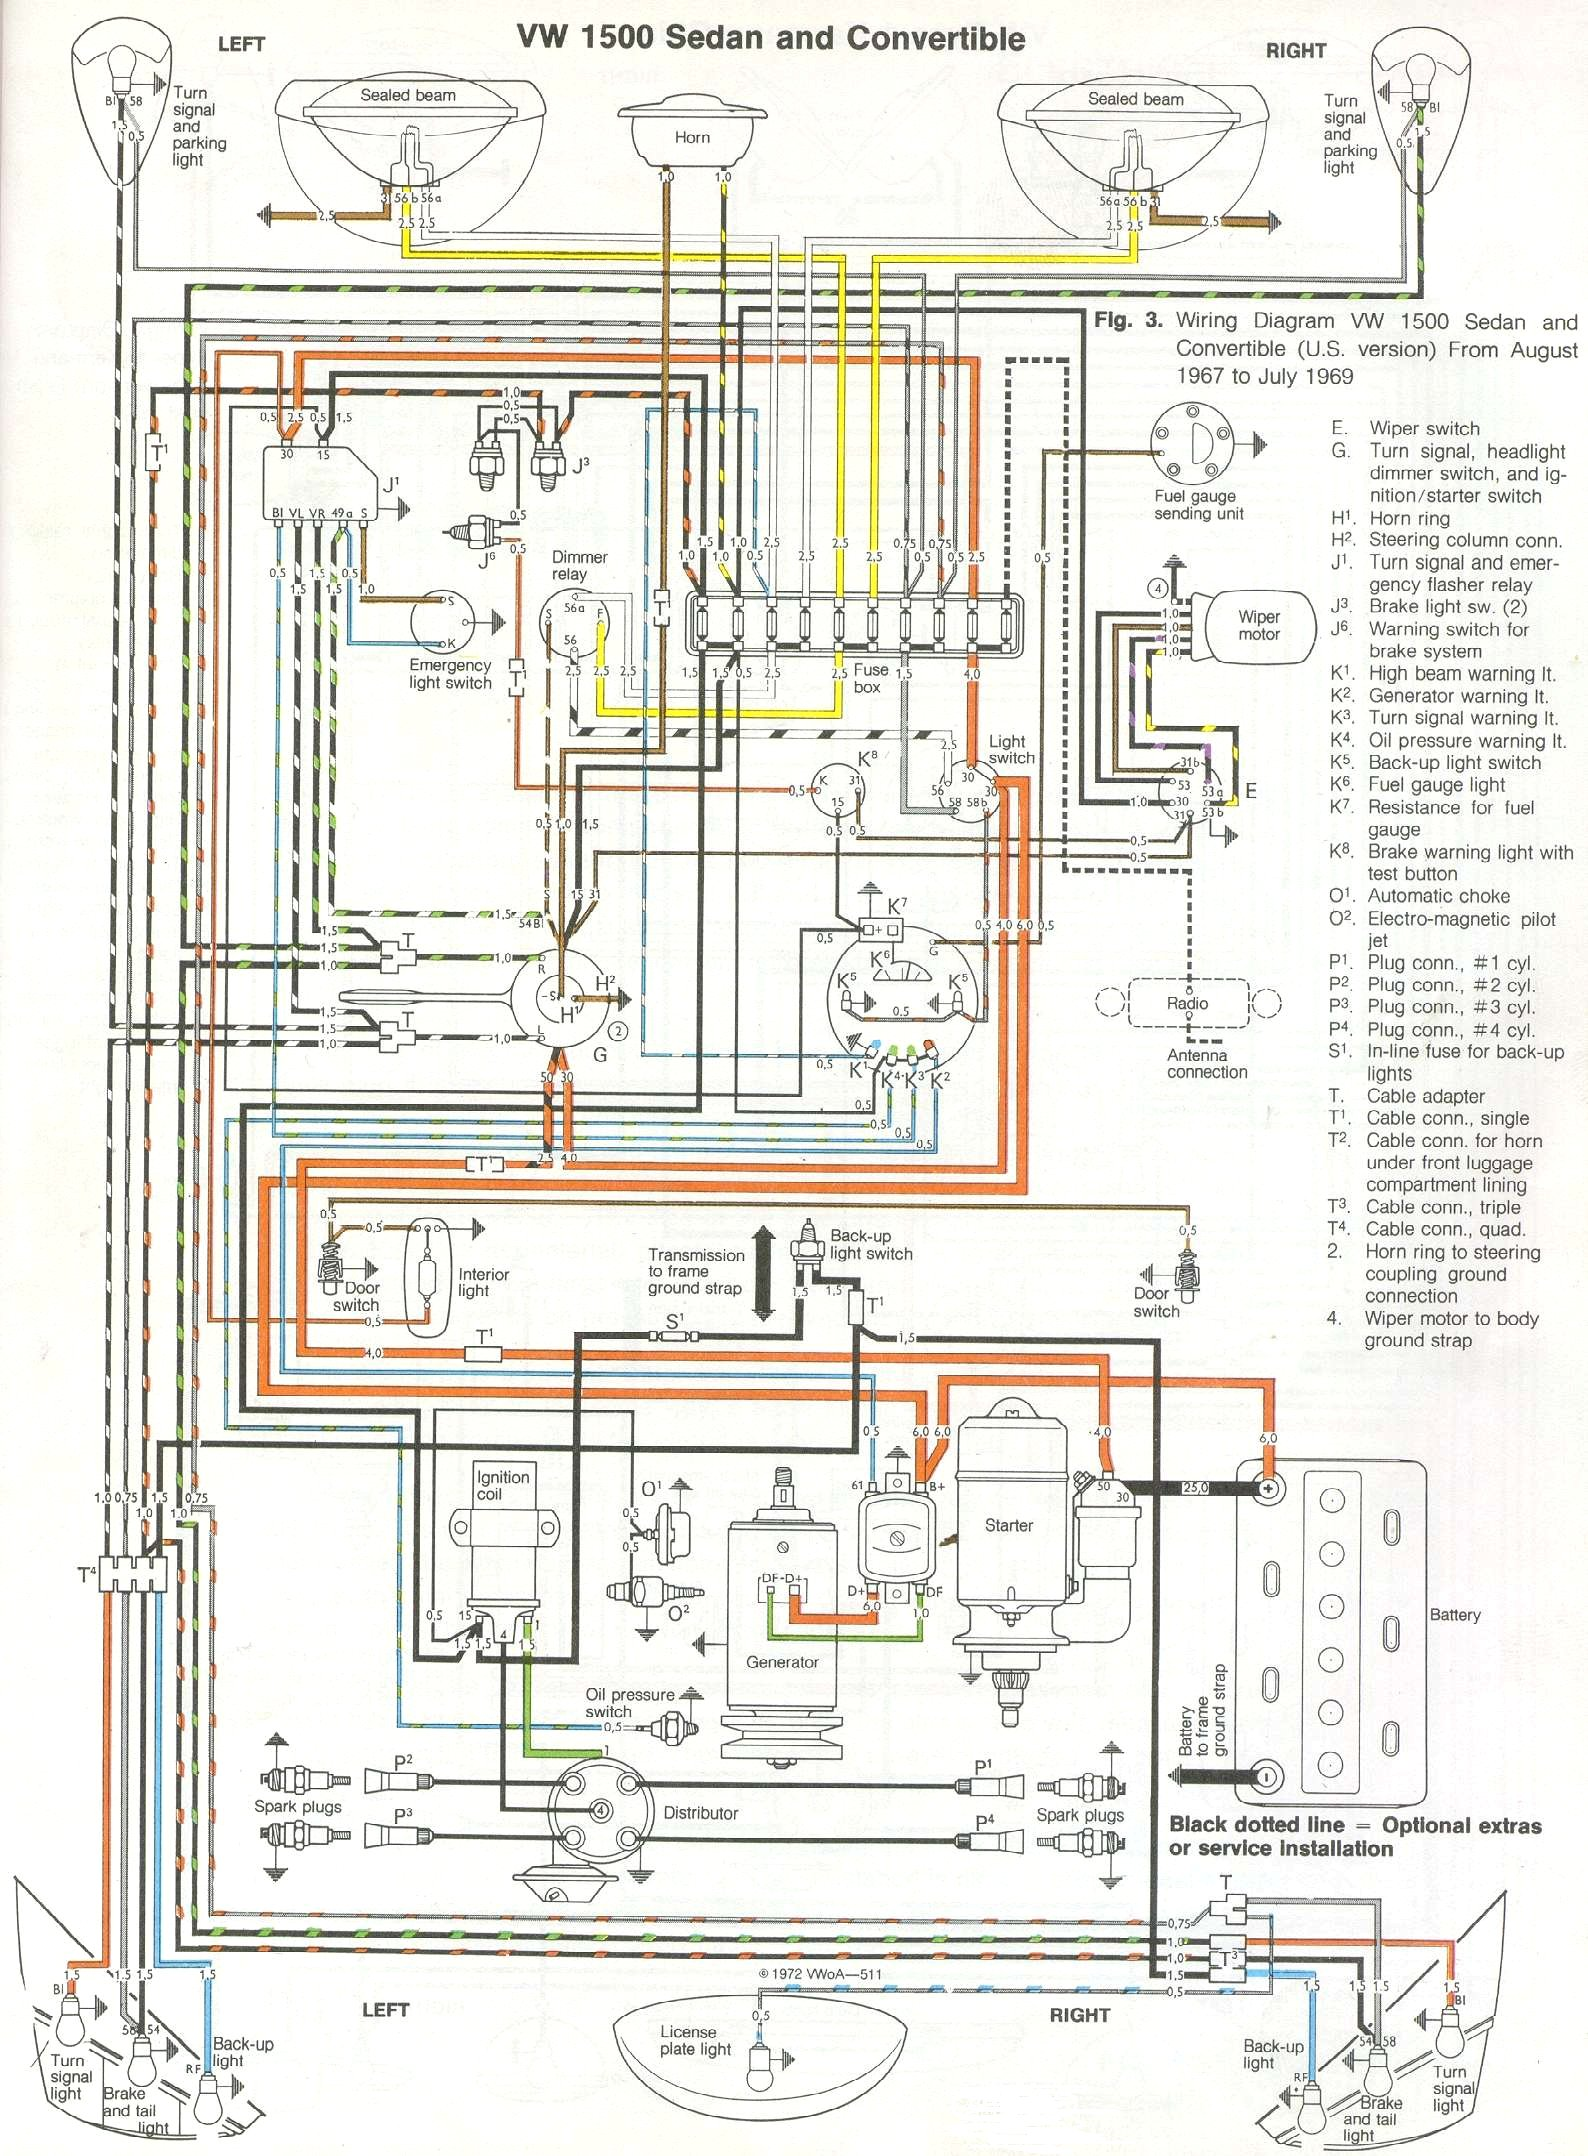 1969 71 beetle wiring diagram on ford fuel pump relay diagram